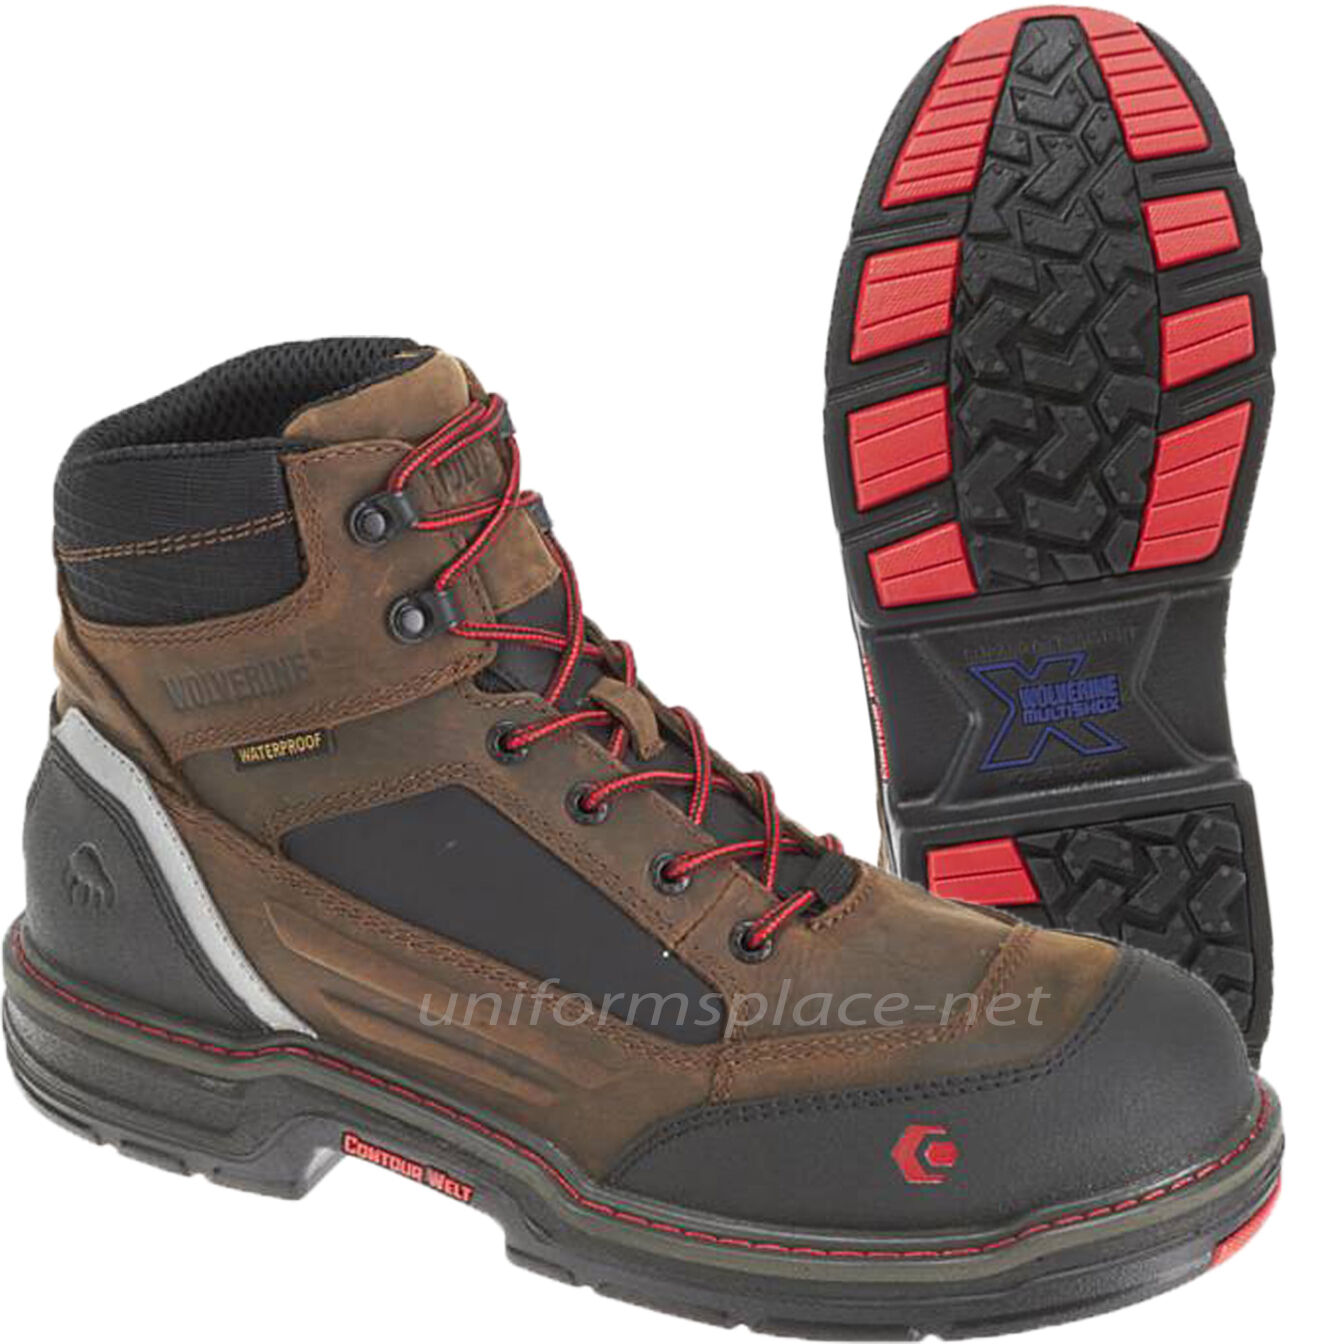 Wolverine Work Boots Mens Overman Overman Overman Waterproof CarbonMax Safety Toe 6  Boot W10483 011194